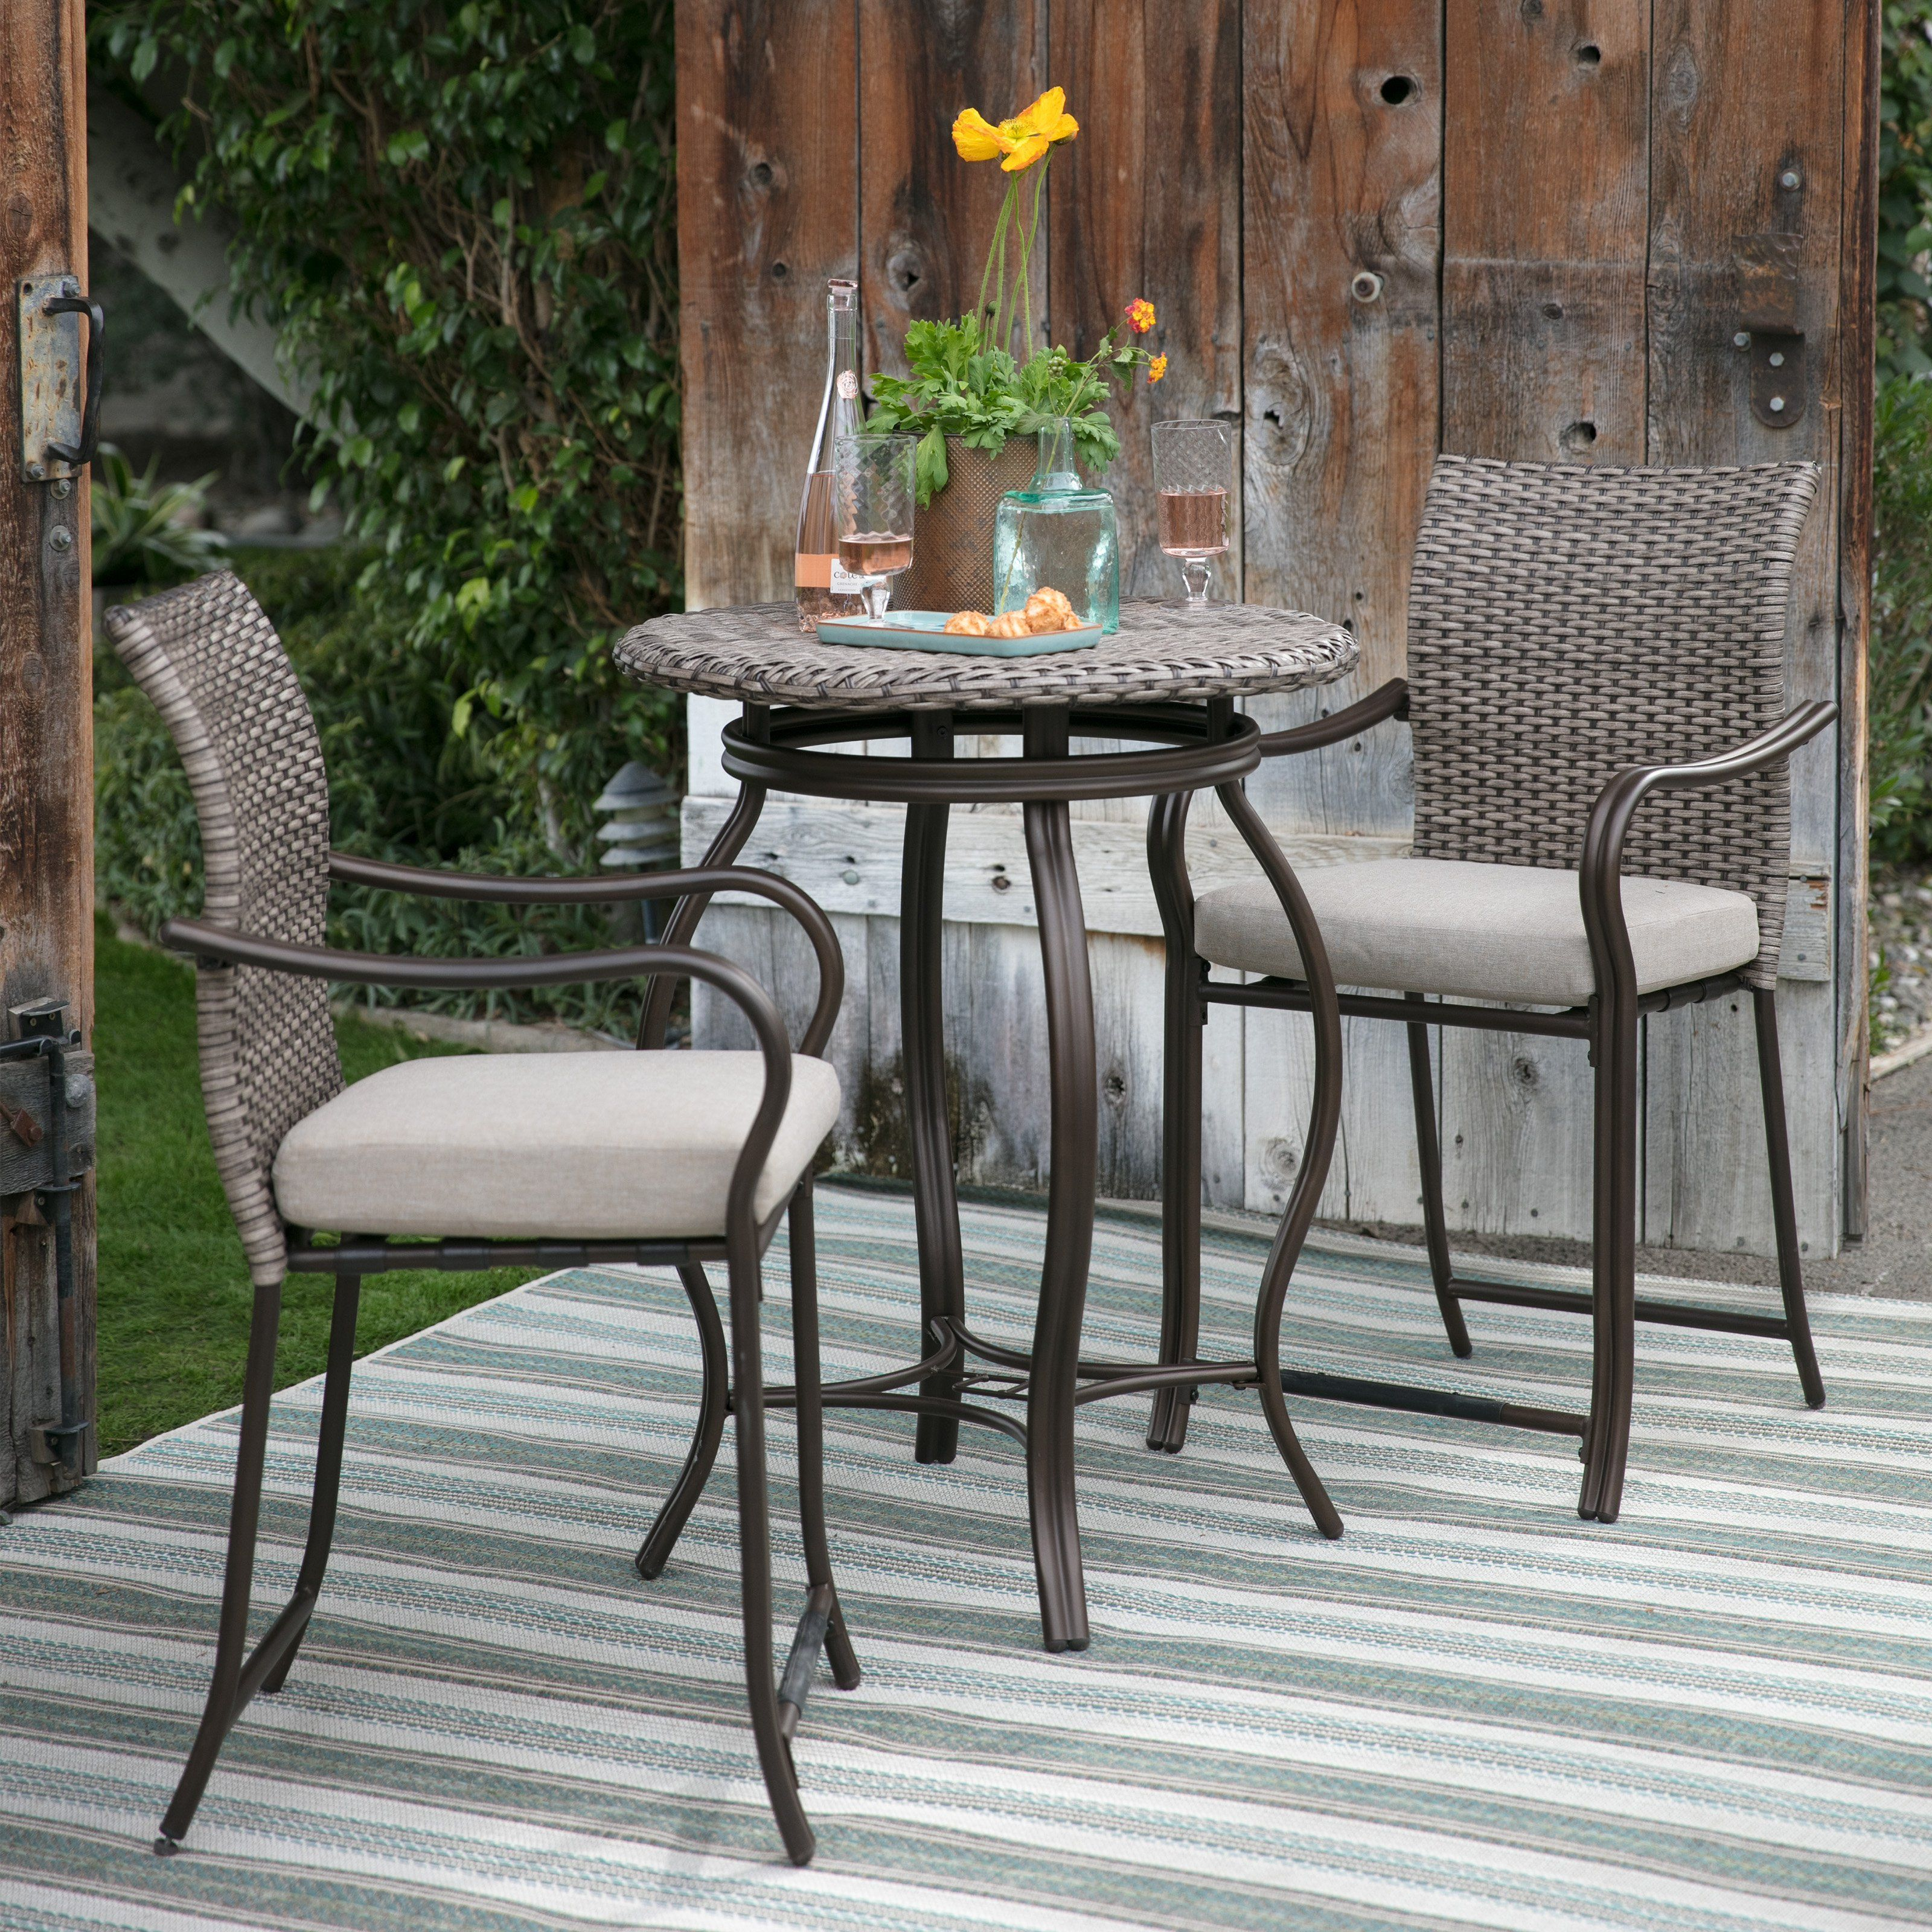 Coral Coast Palma All Weather Wicker Bar Height Bistro Dining Set